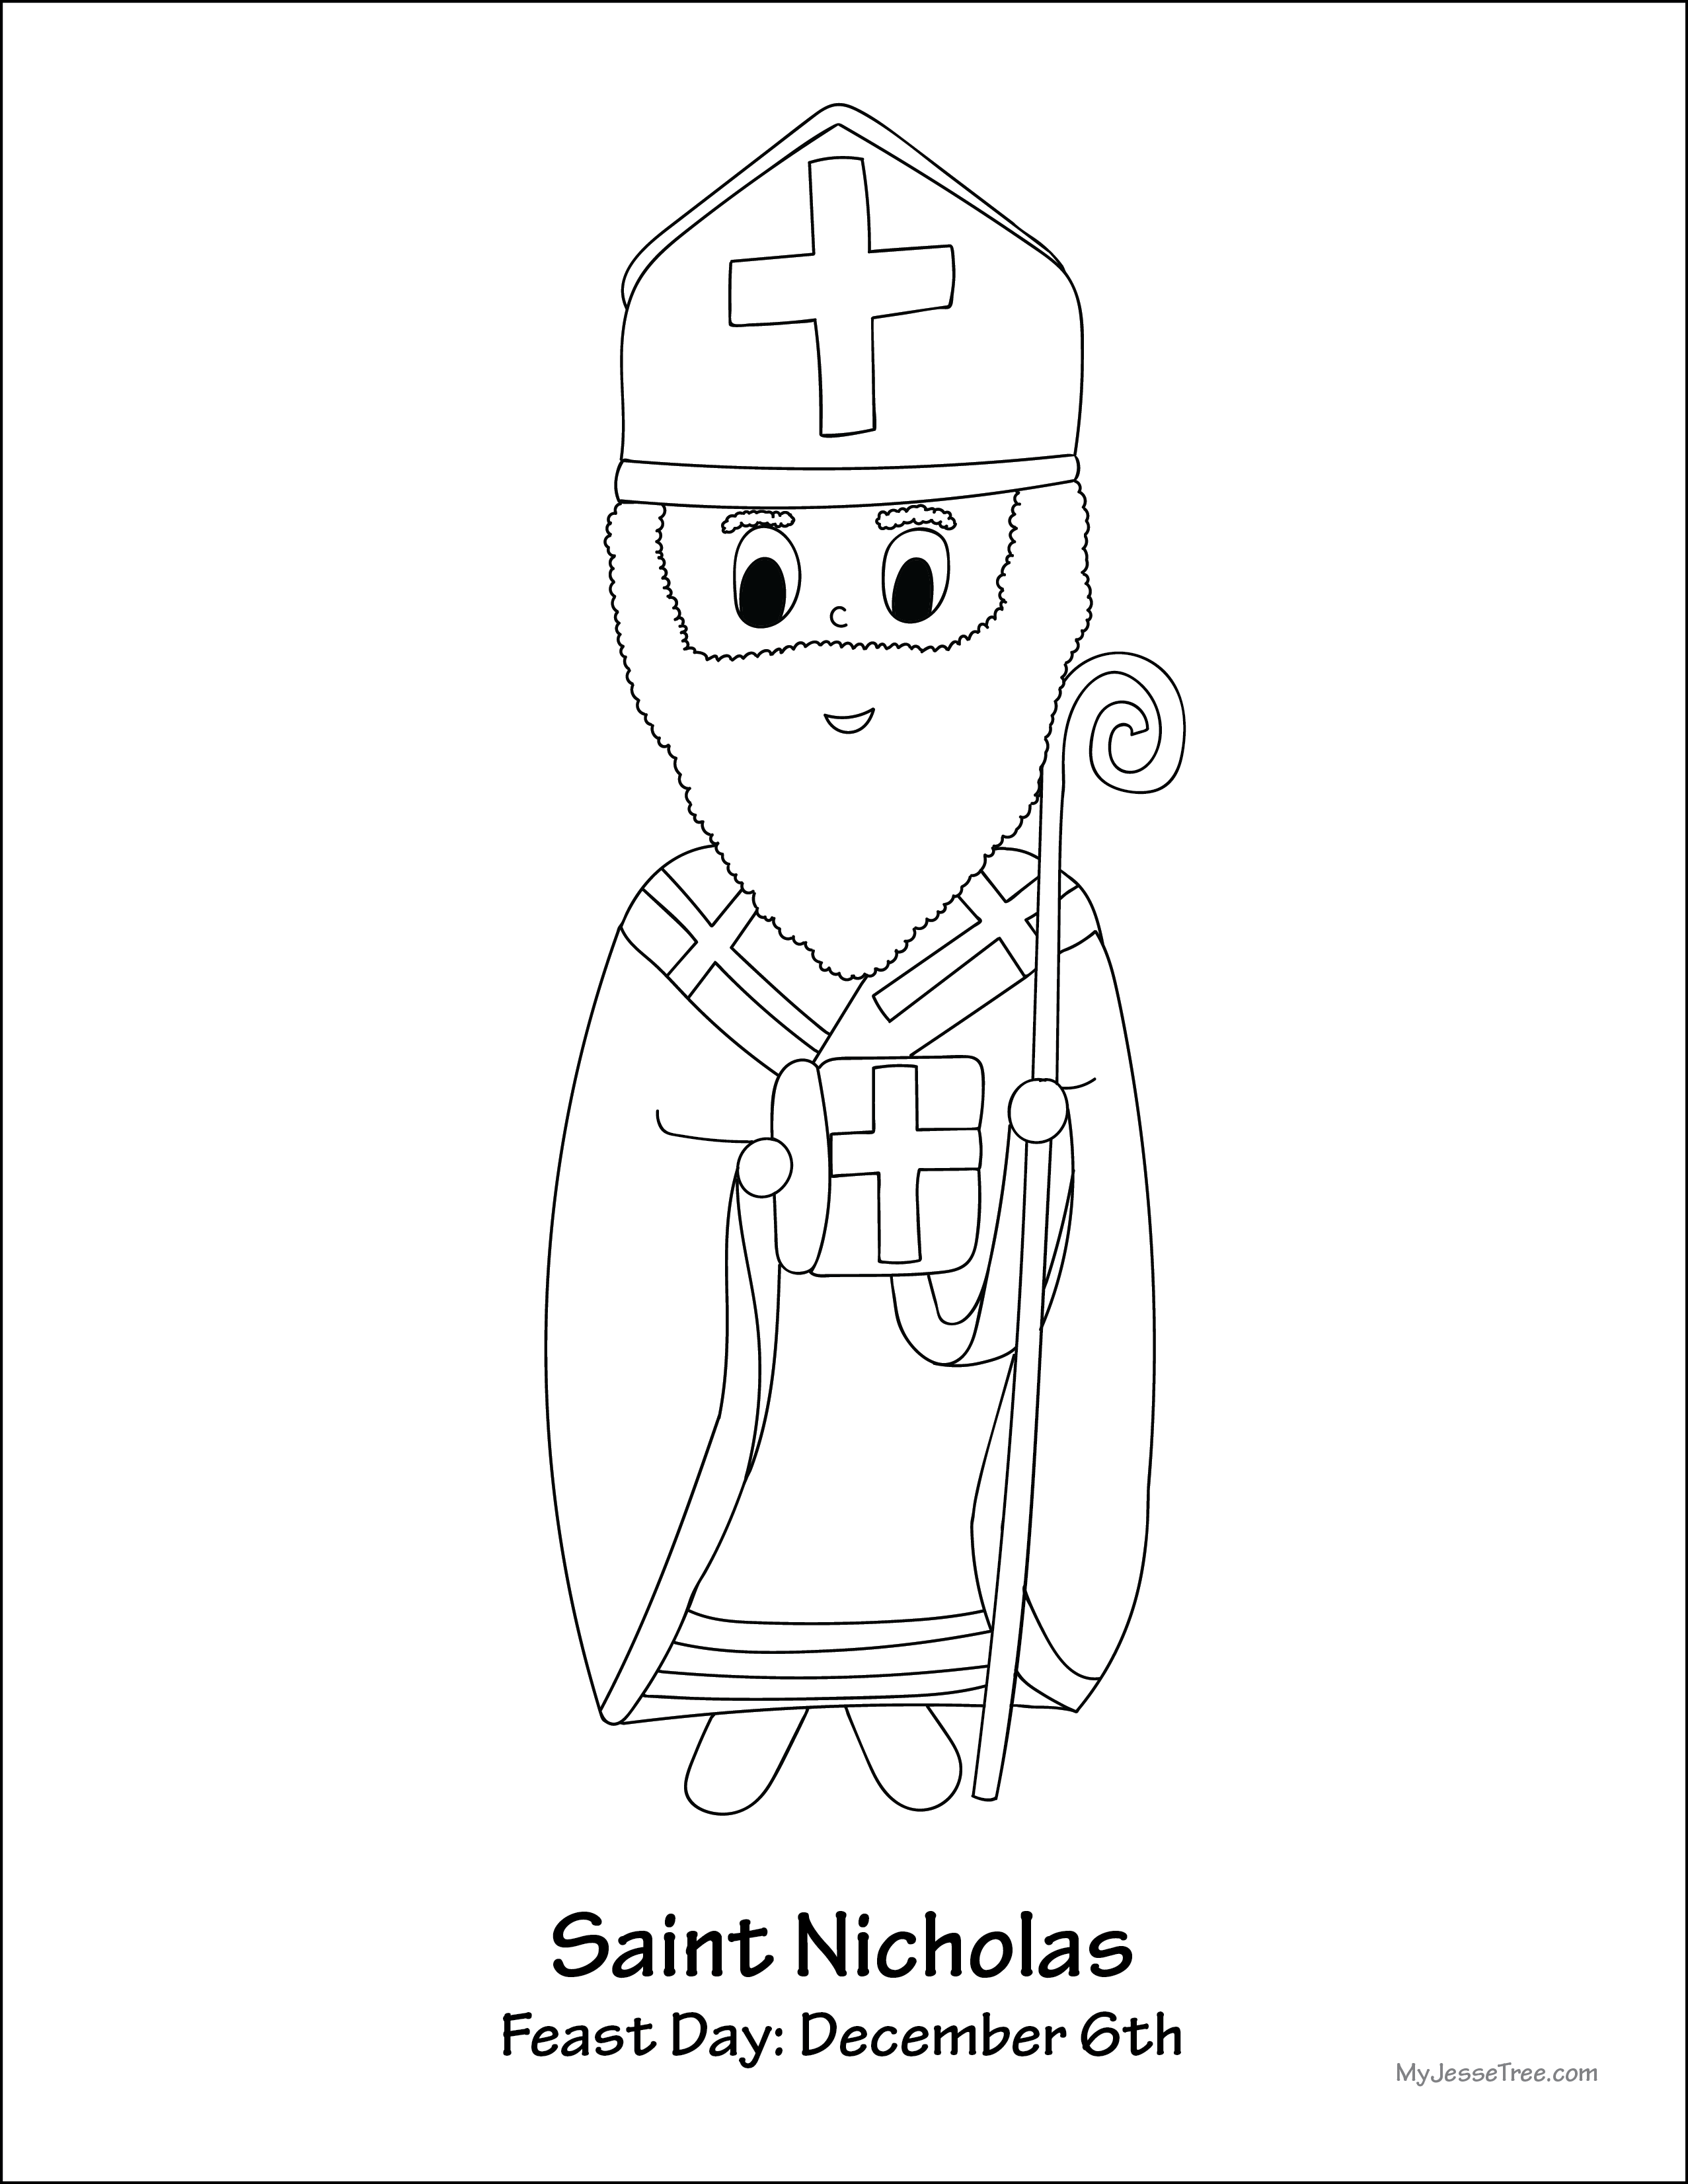 Free St Nicholas Day Coloring Pages (With images) | St nicholas ... | 3304x2554